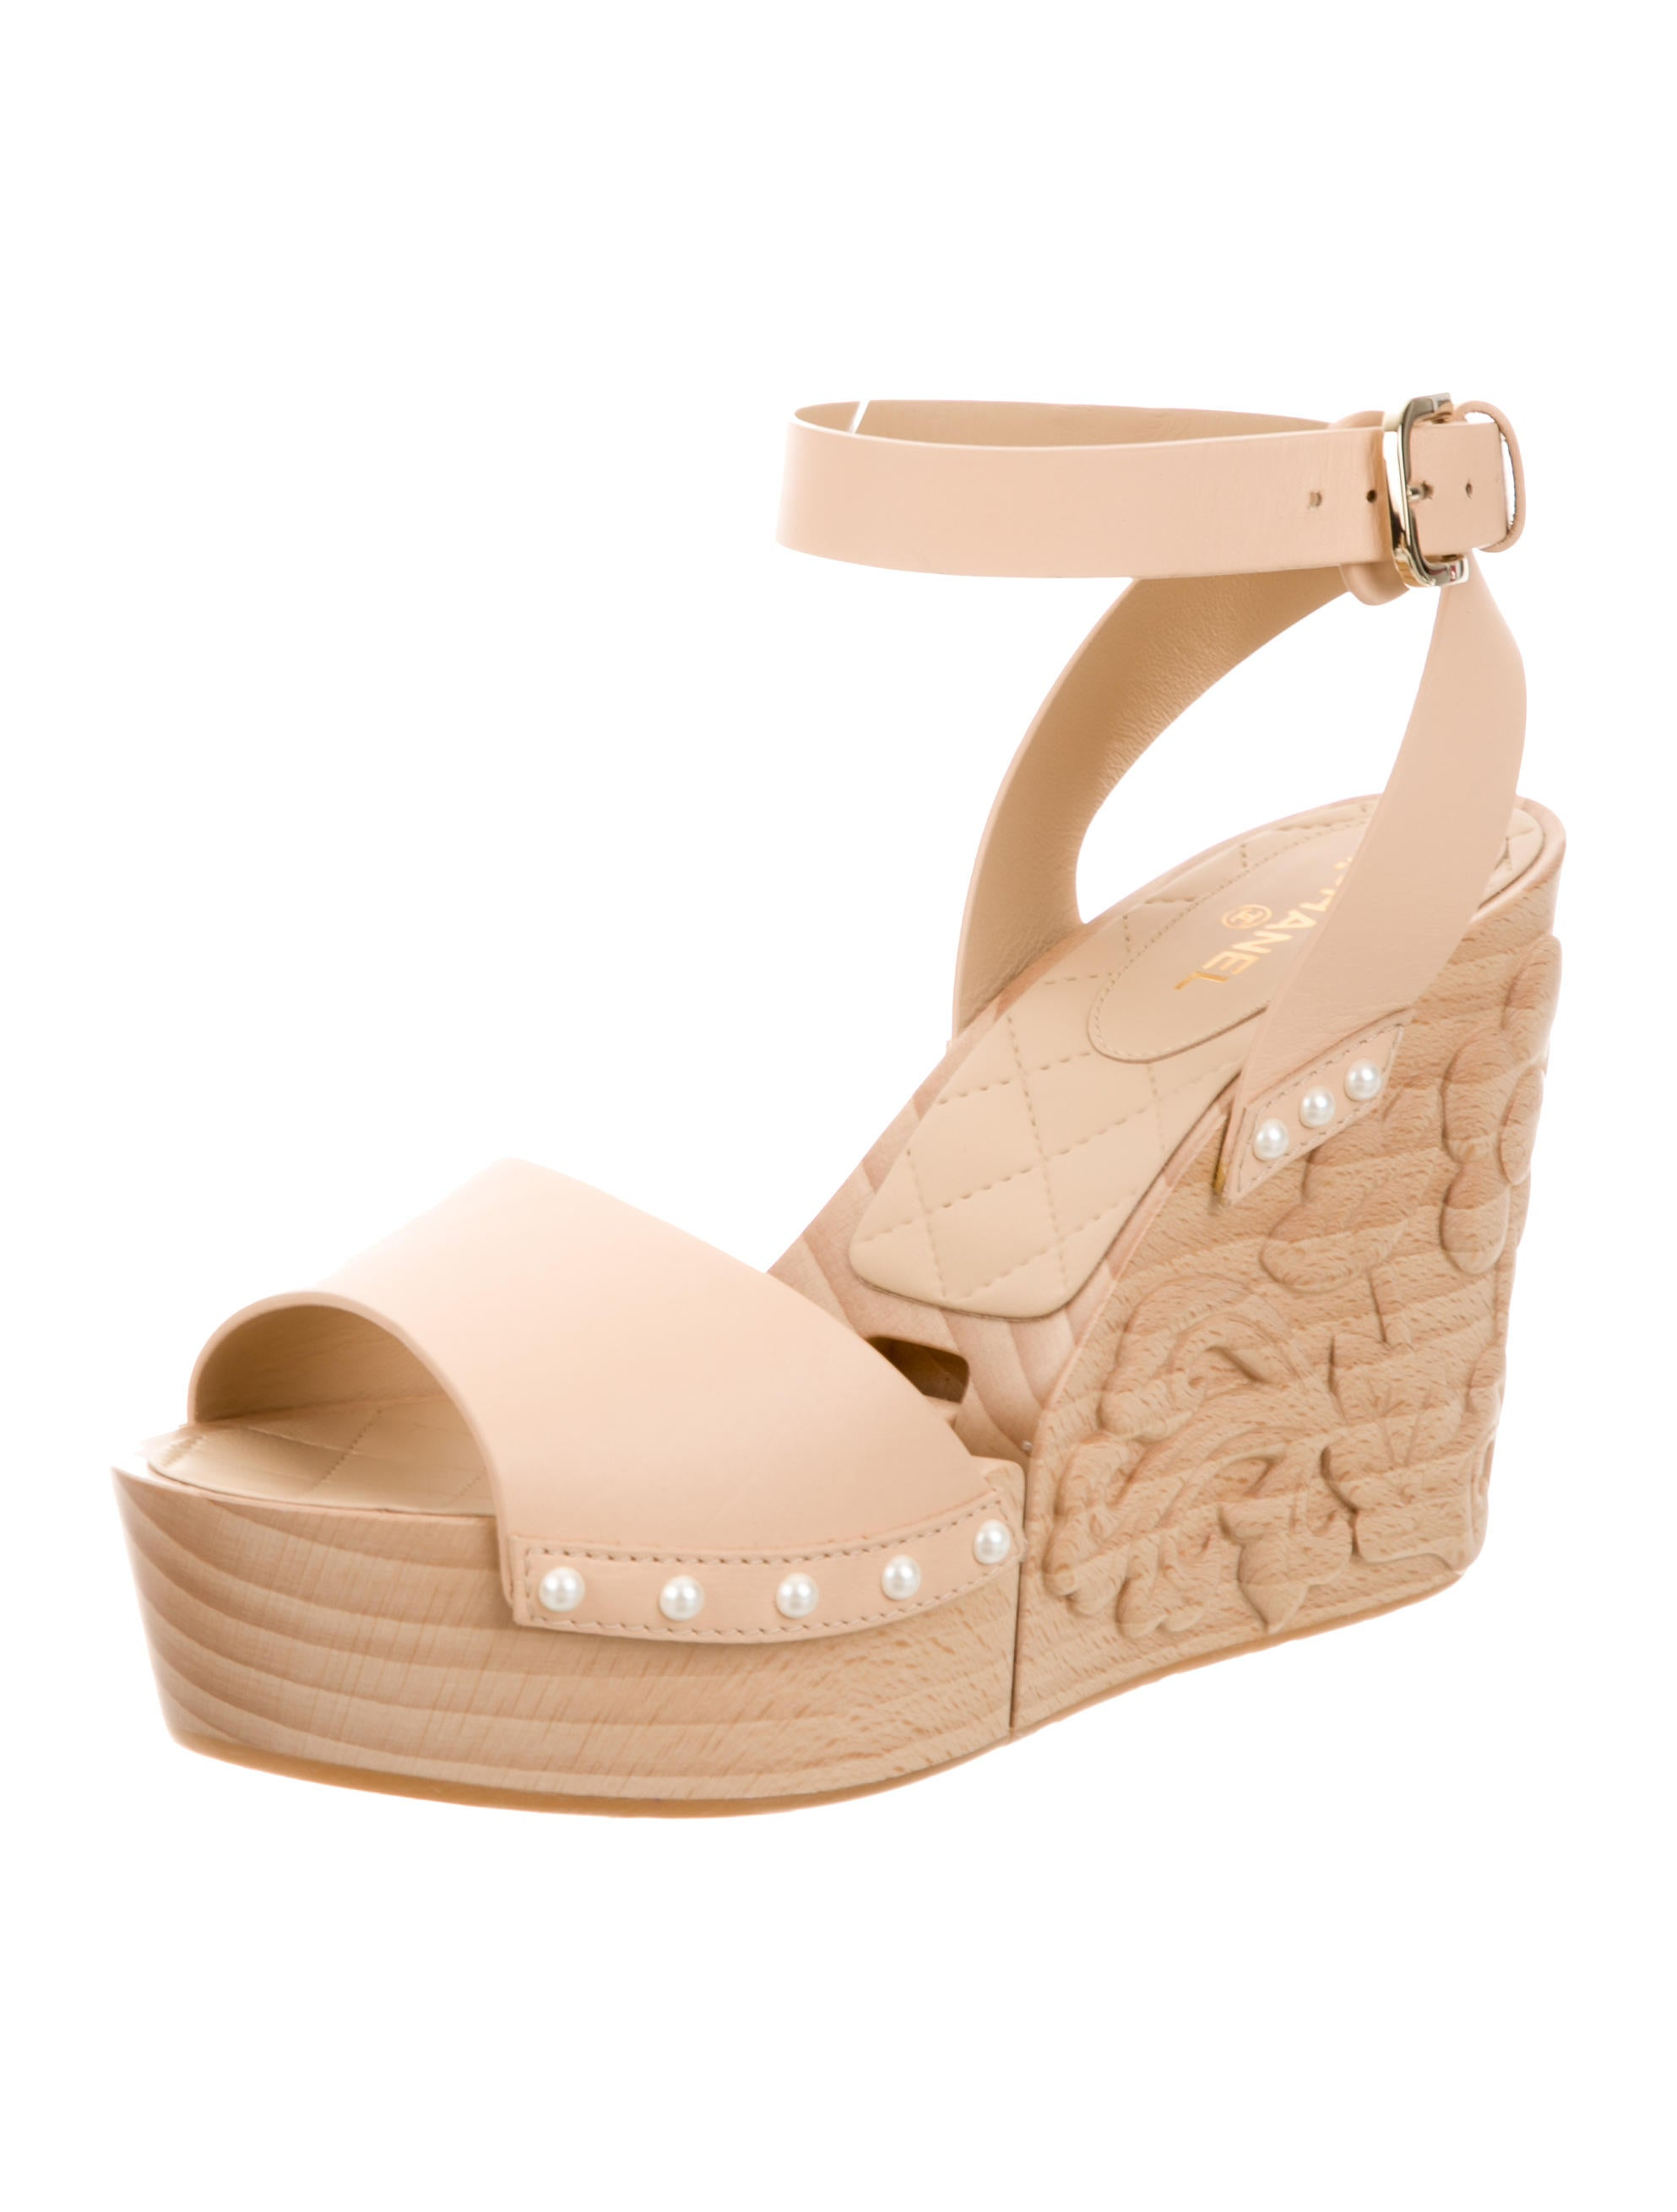 chanel 2016 camellia leather wedges shoes cha166707